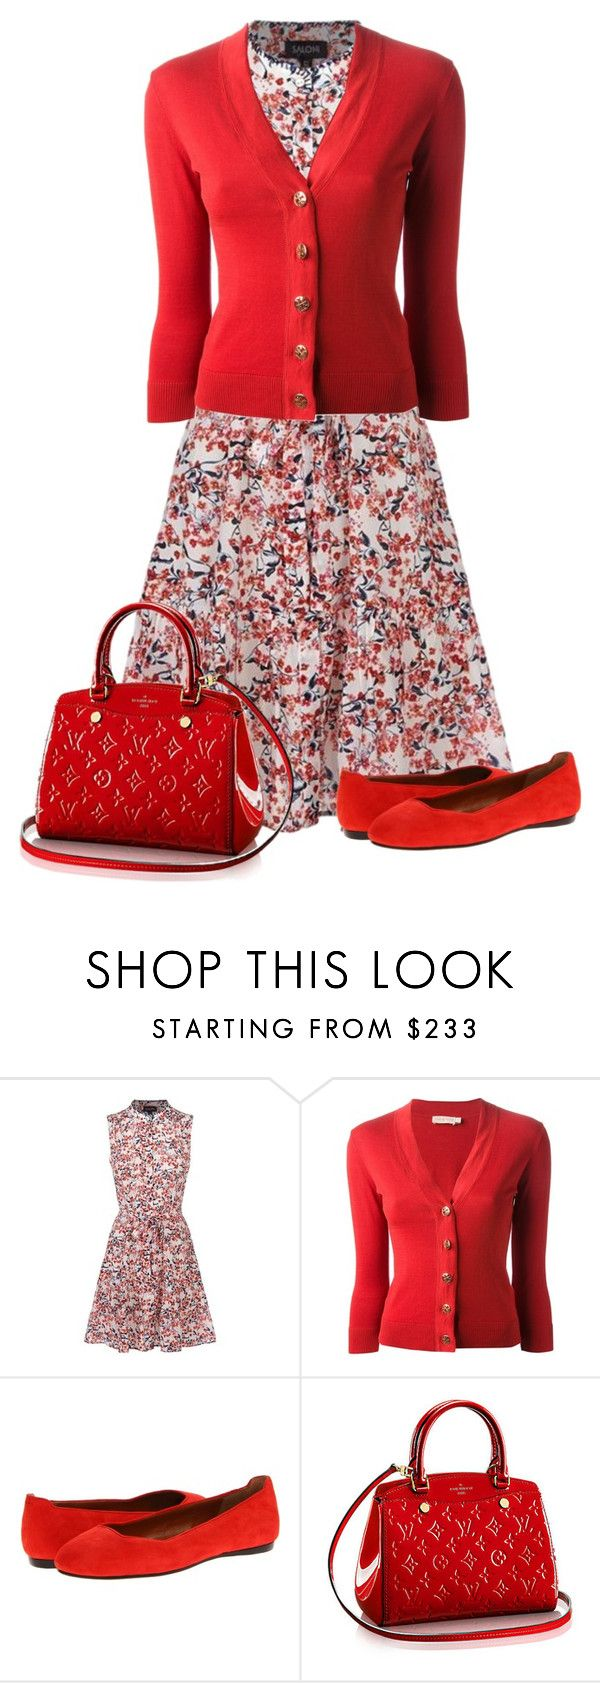 """6-24-16"" by nellegrau ❤ liked on Polyvore featuring Saloni, Tory Burch and Calvin Klein Collection"